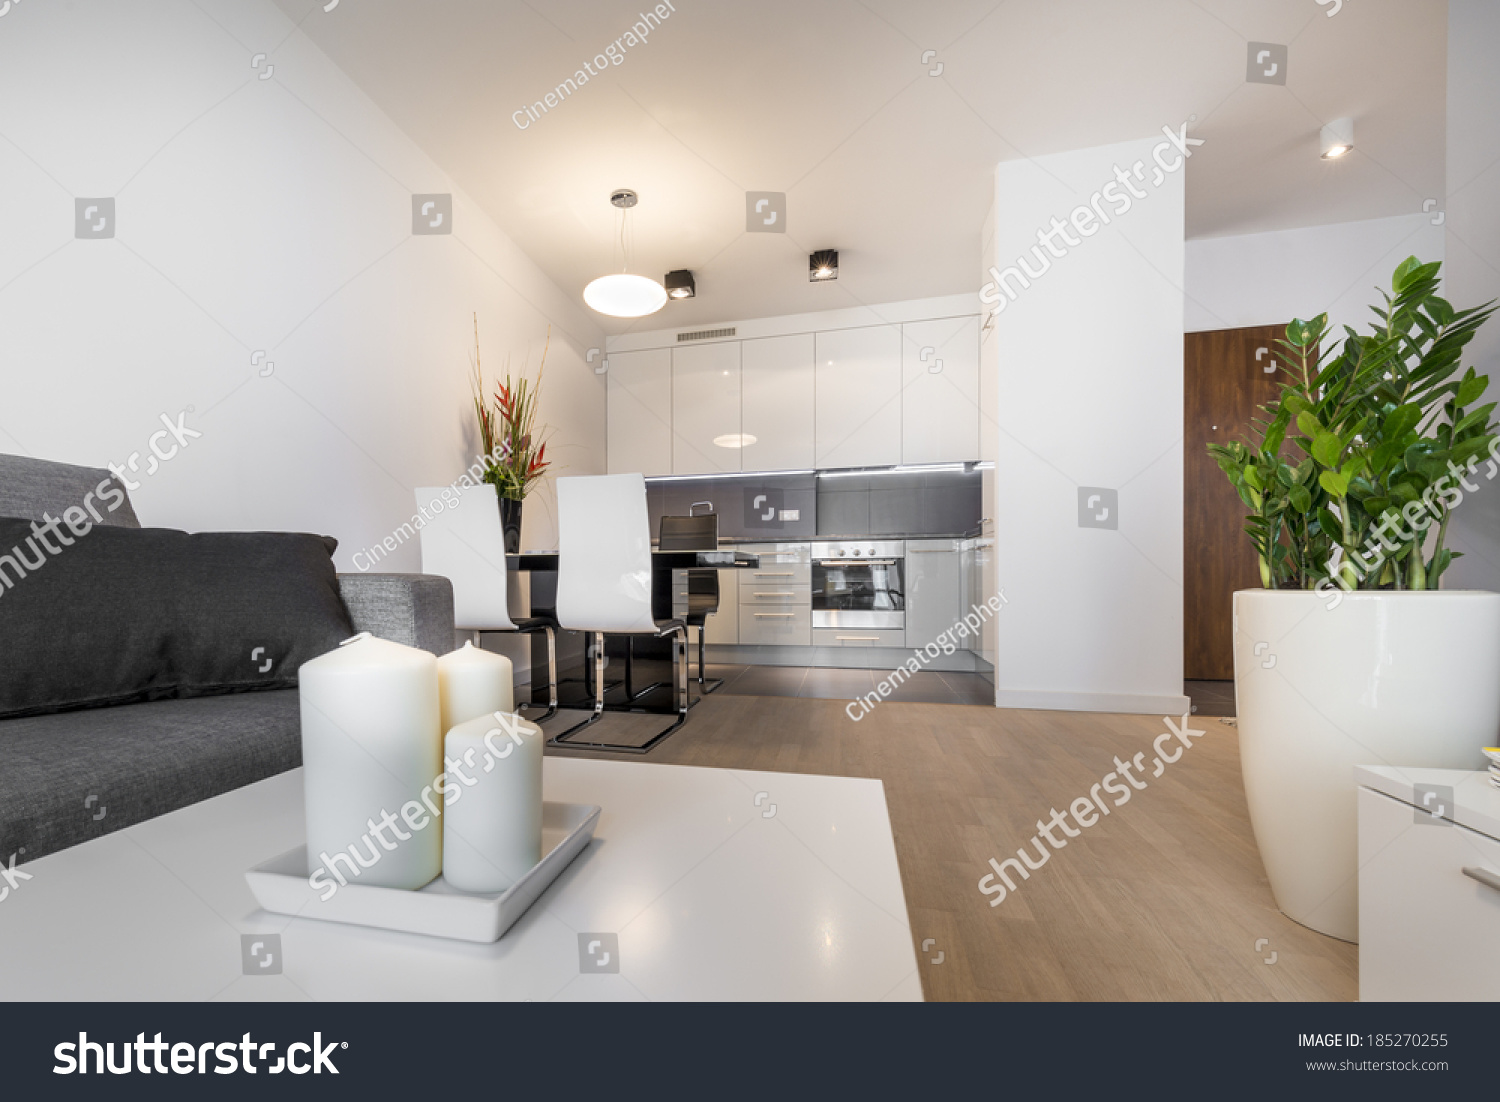 Modern Luxury Living Room Interior Design Stock Photo (Royalty Free ...